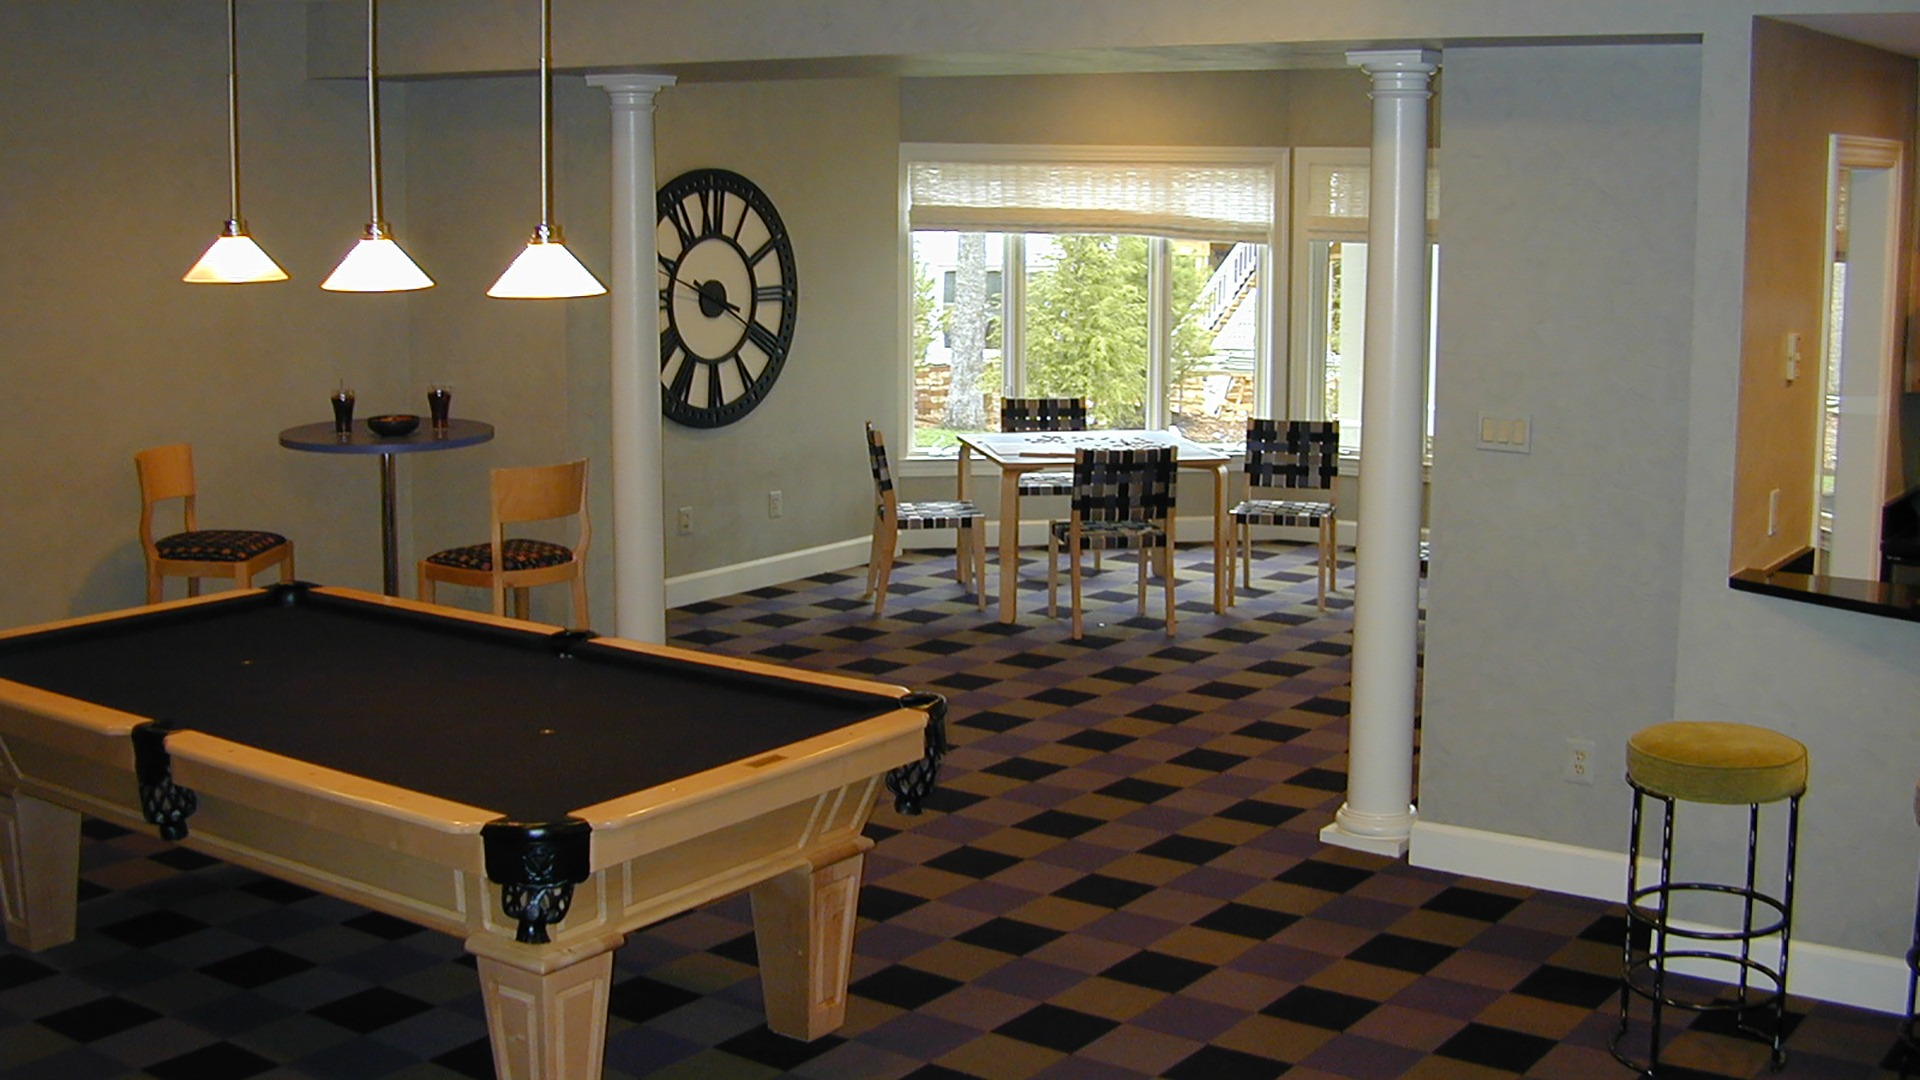 The Recreation Room in the Woodley model. Some optional features shown.